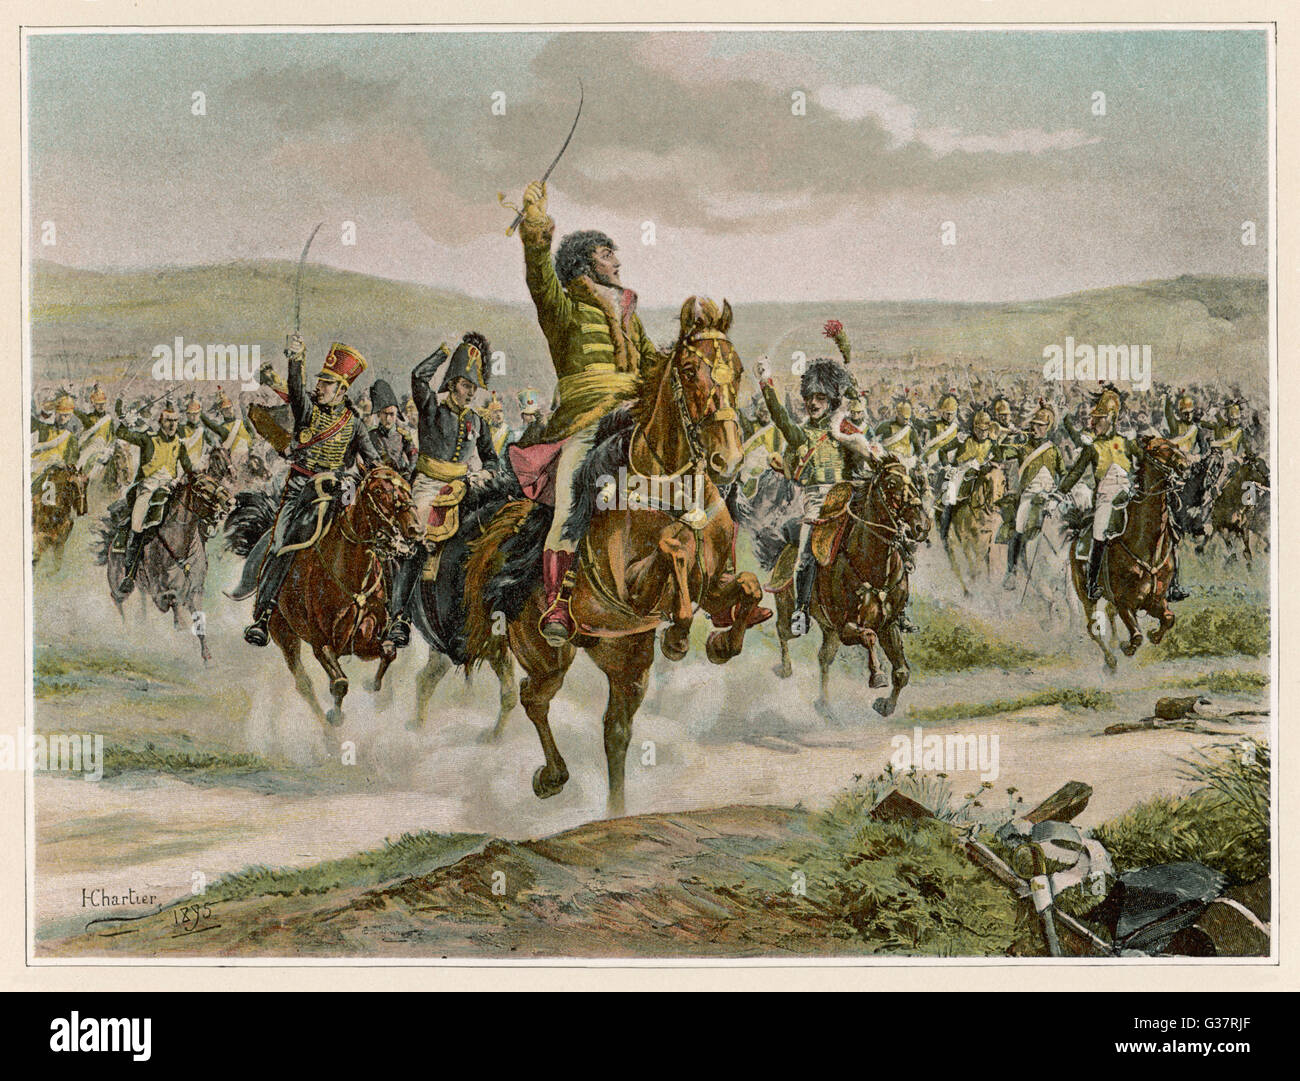 BATTLE OF JENA Murat leads the French cavalry  to victory against the  Prussians       Date: 14 October 1806 - Stock Image